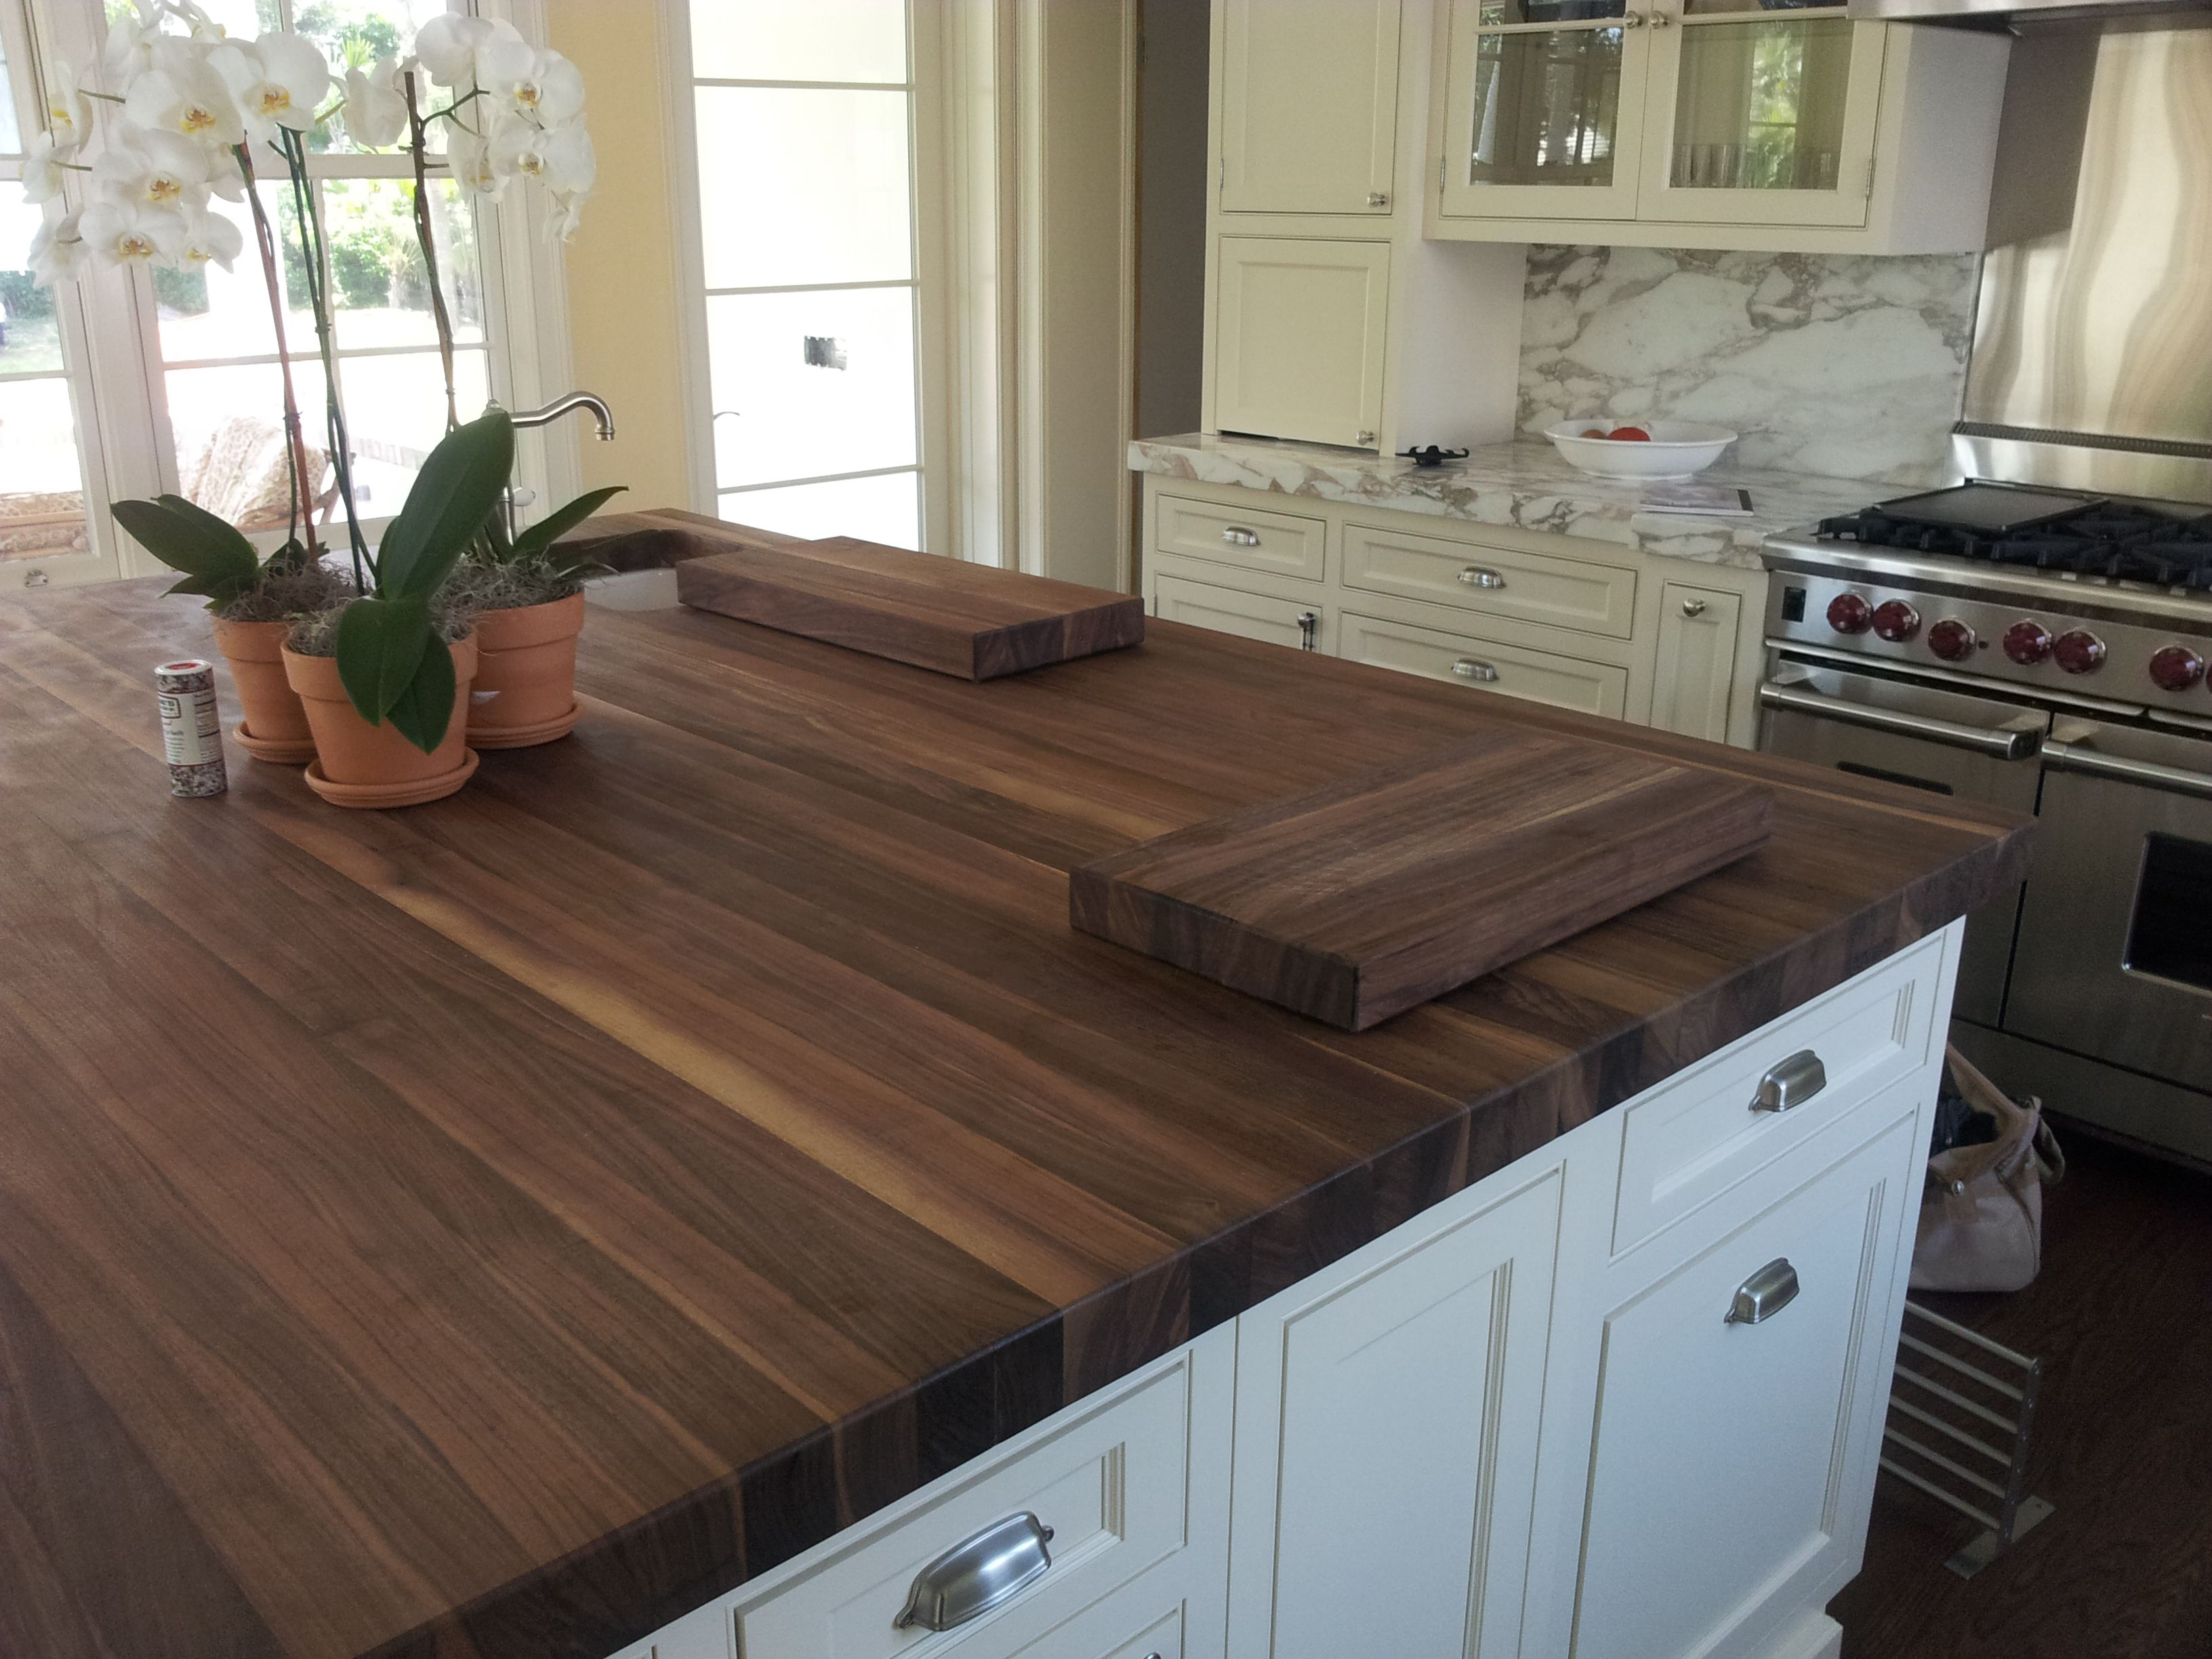 Dark Butcher Block Countertop With